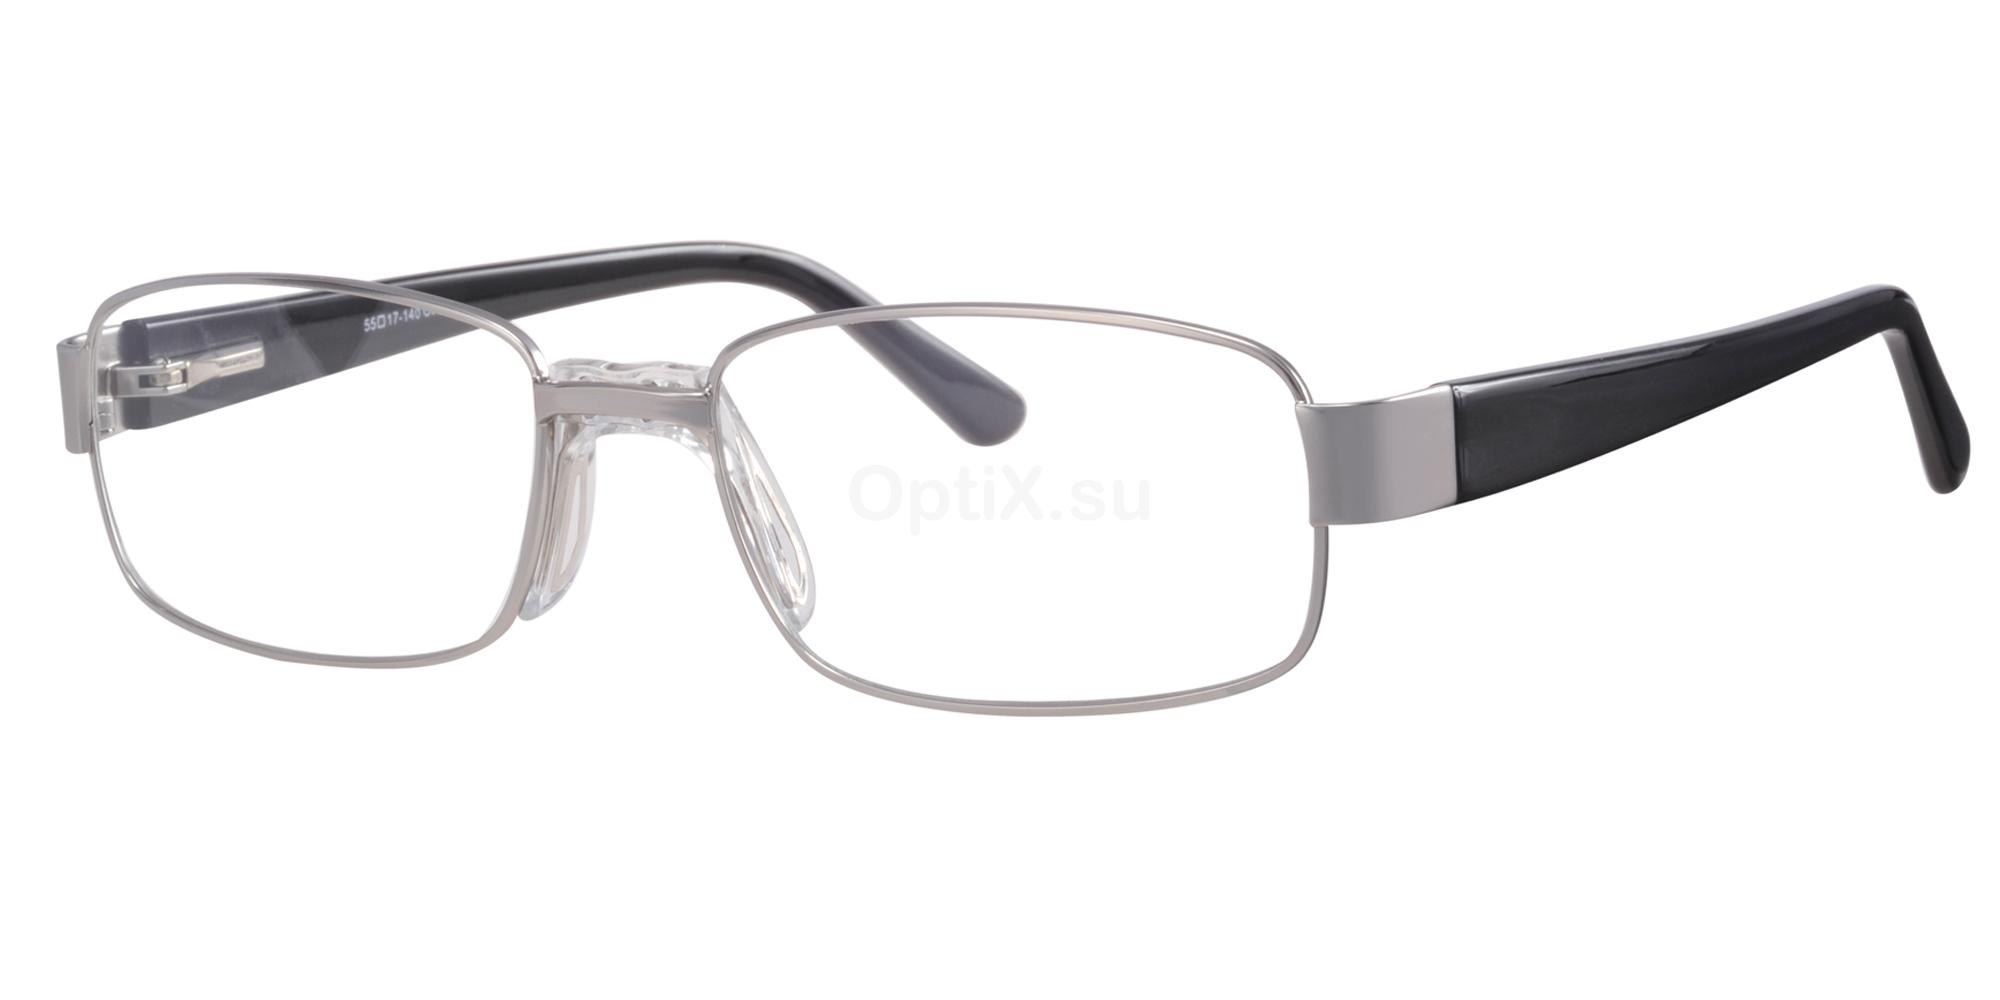 C92 377 Glasses, Visage Elite